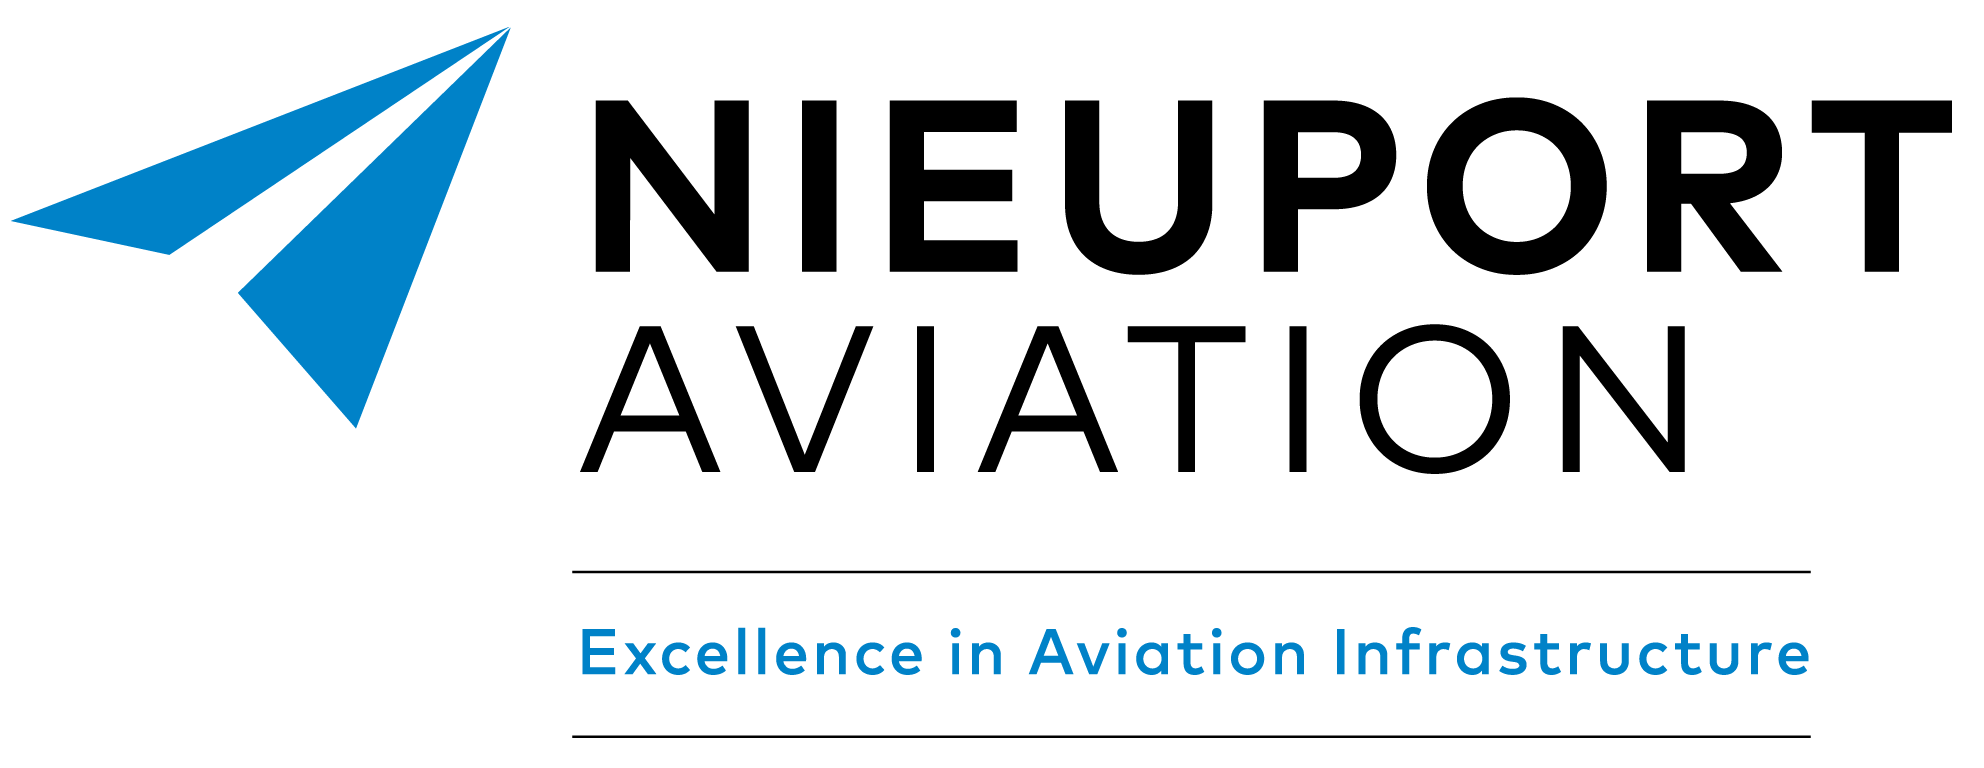 Nieuport Aviation email 2018-02.png